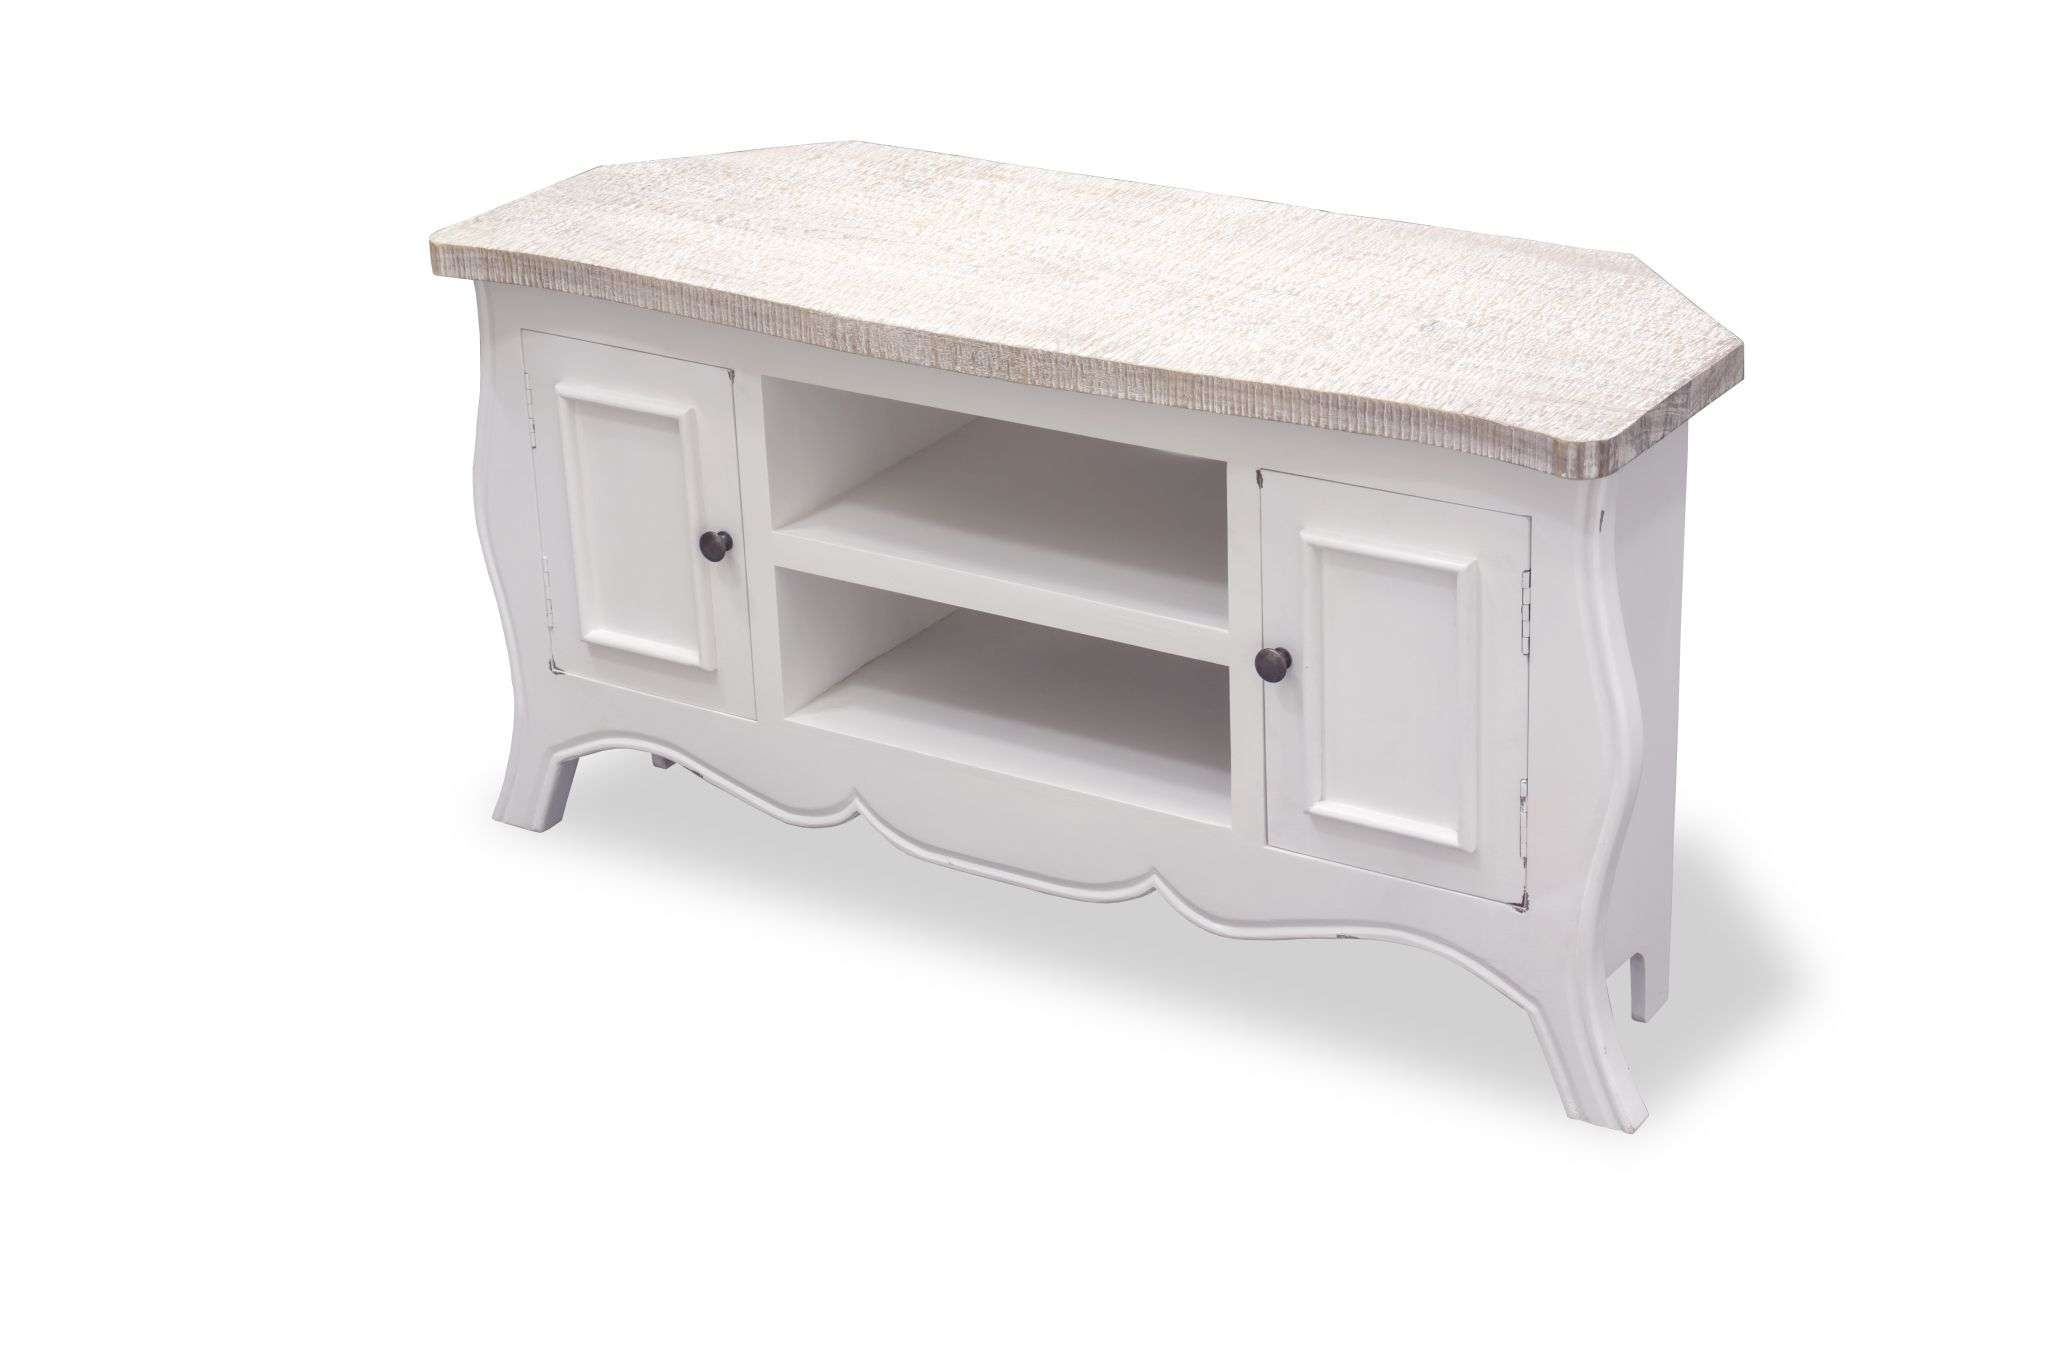 Painted Cottonwood Shabby Chic Corner Tv Cabinet 45570 P (2048 With Regard To White Corner Tv Cabinets (View 11 of 20)